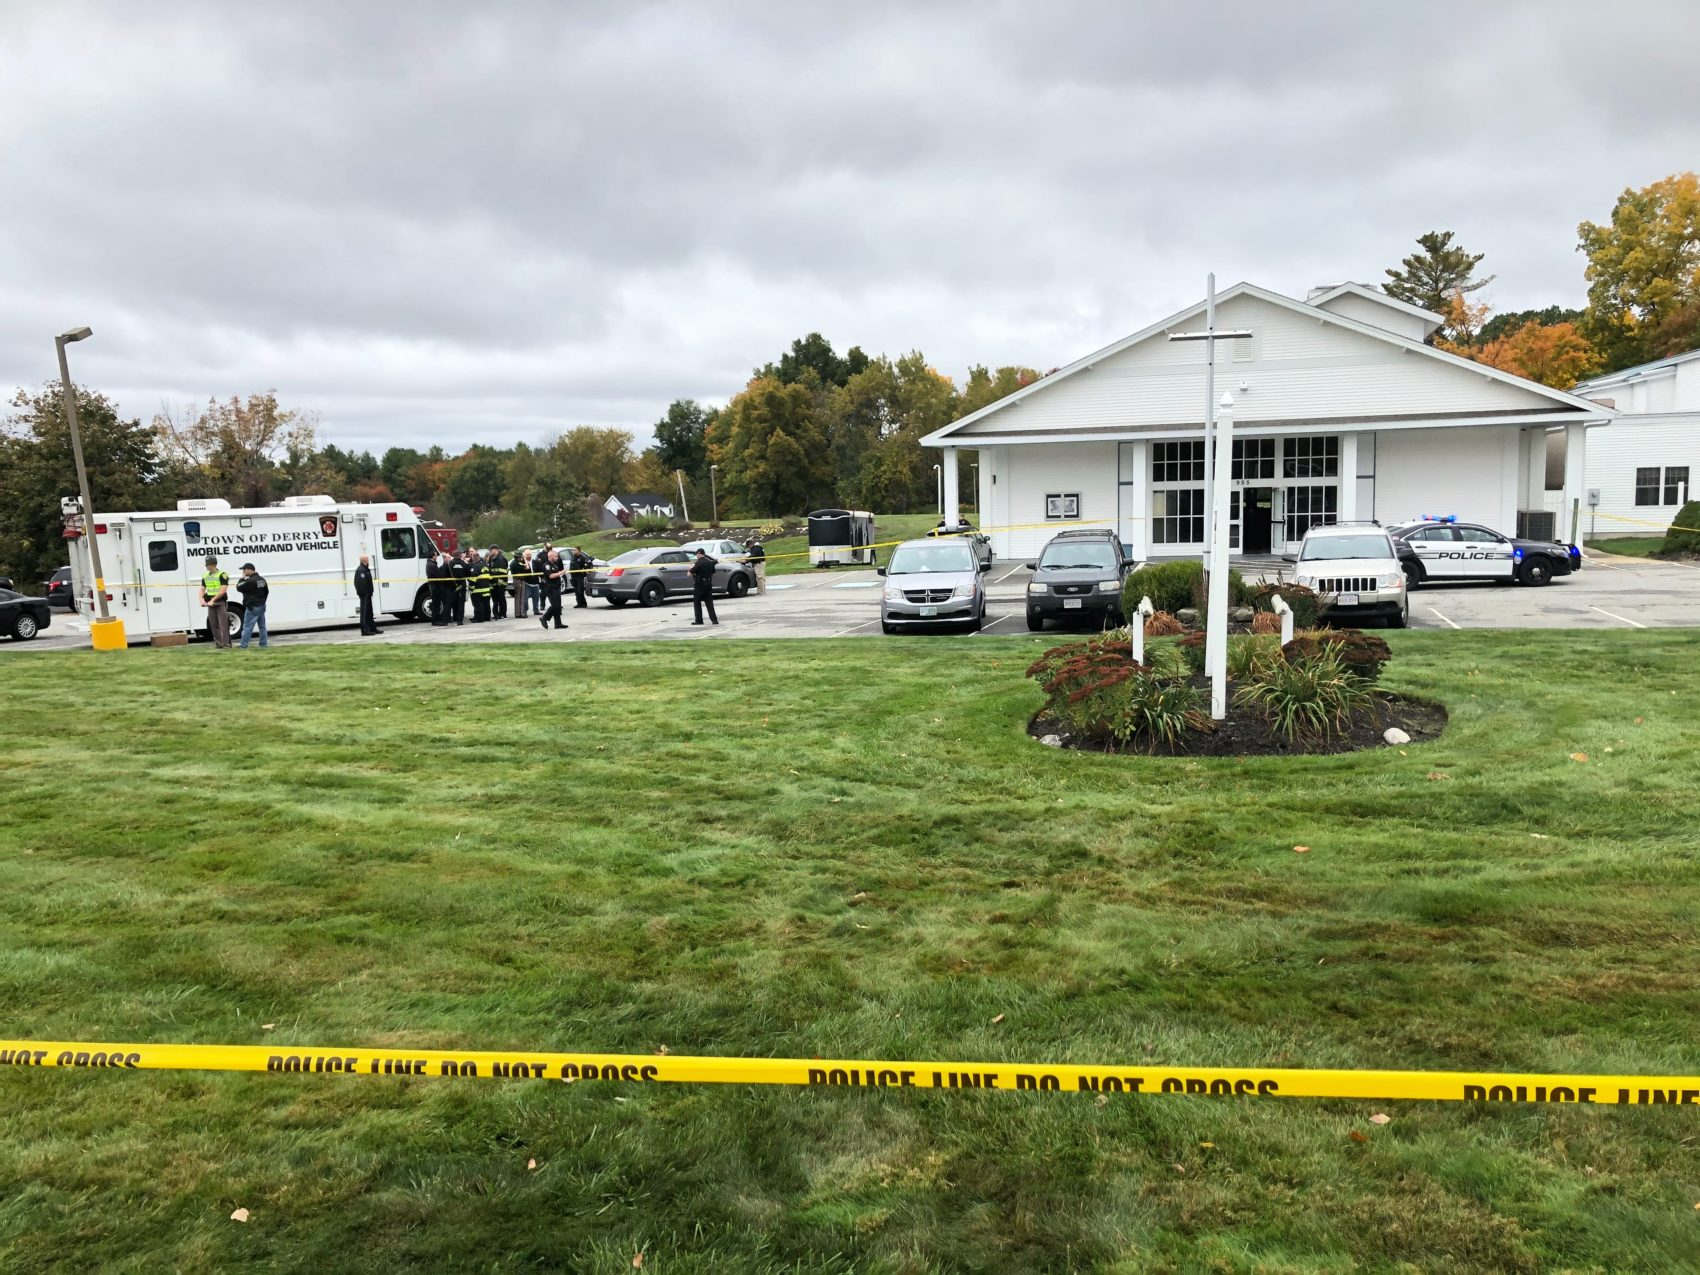 Gunman opens fire at church wedding ceremony, 2 people shot